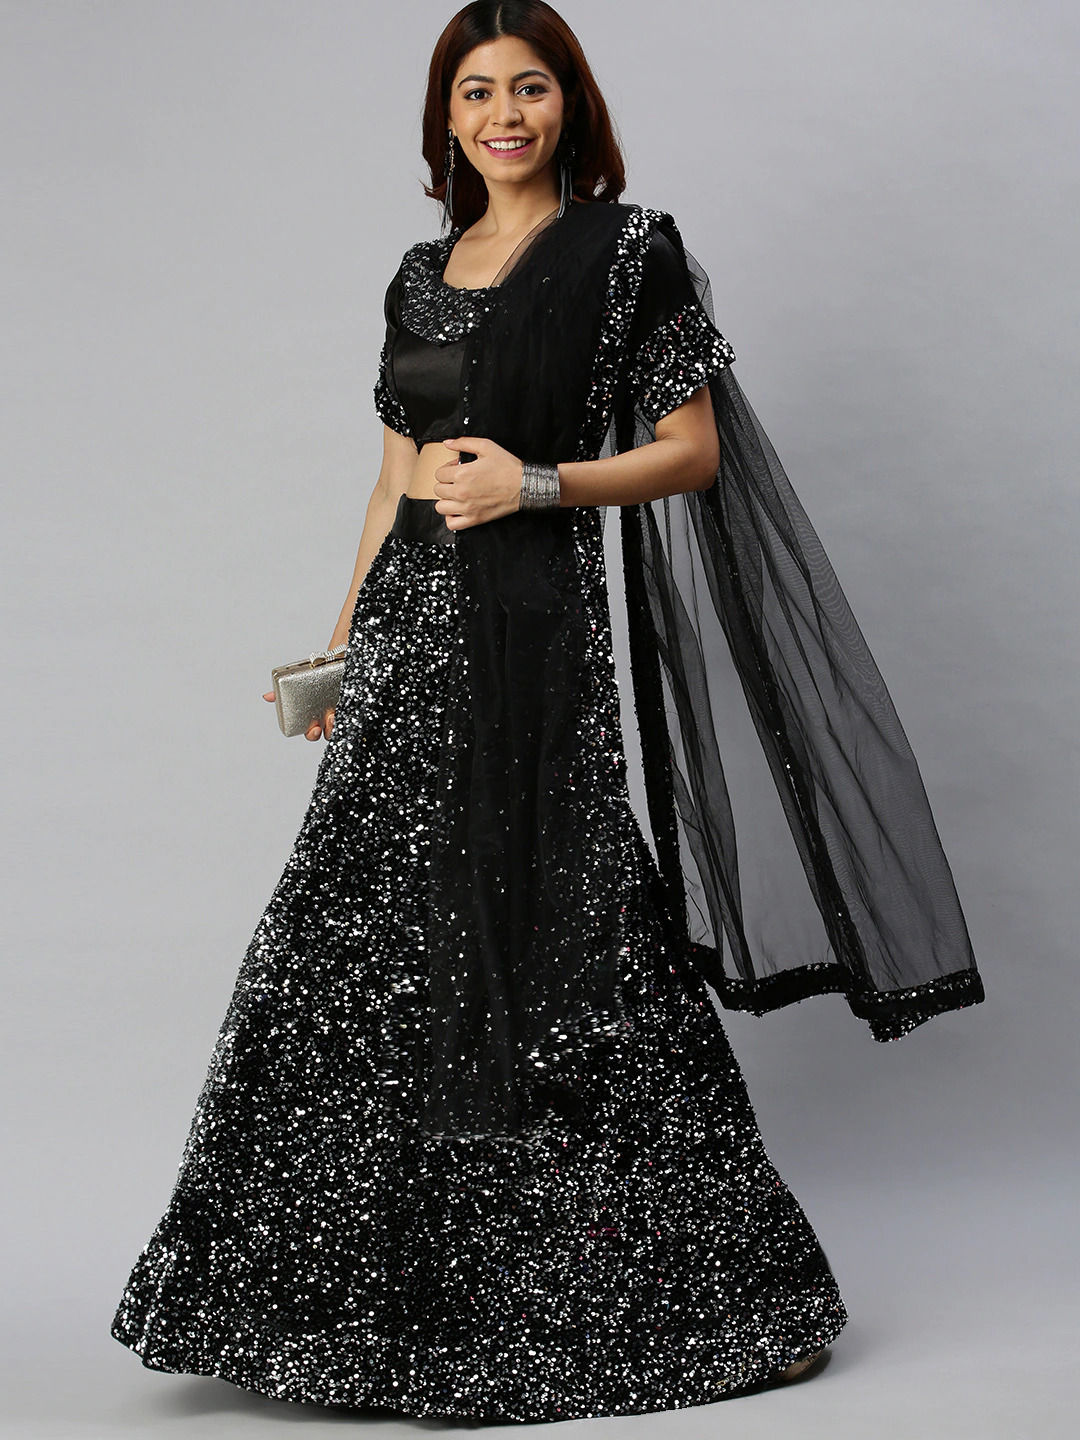 JINAL & JINAL | Black & Silver-Toned Solid Semi-Stitched Lehenga & Unstitched Blouse with Dupatta